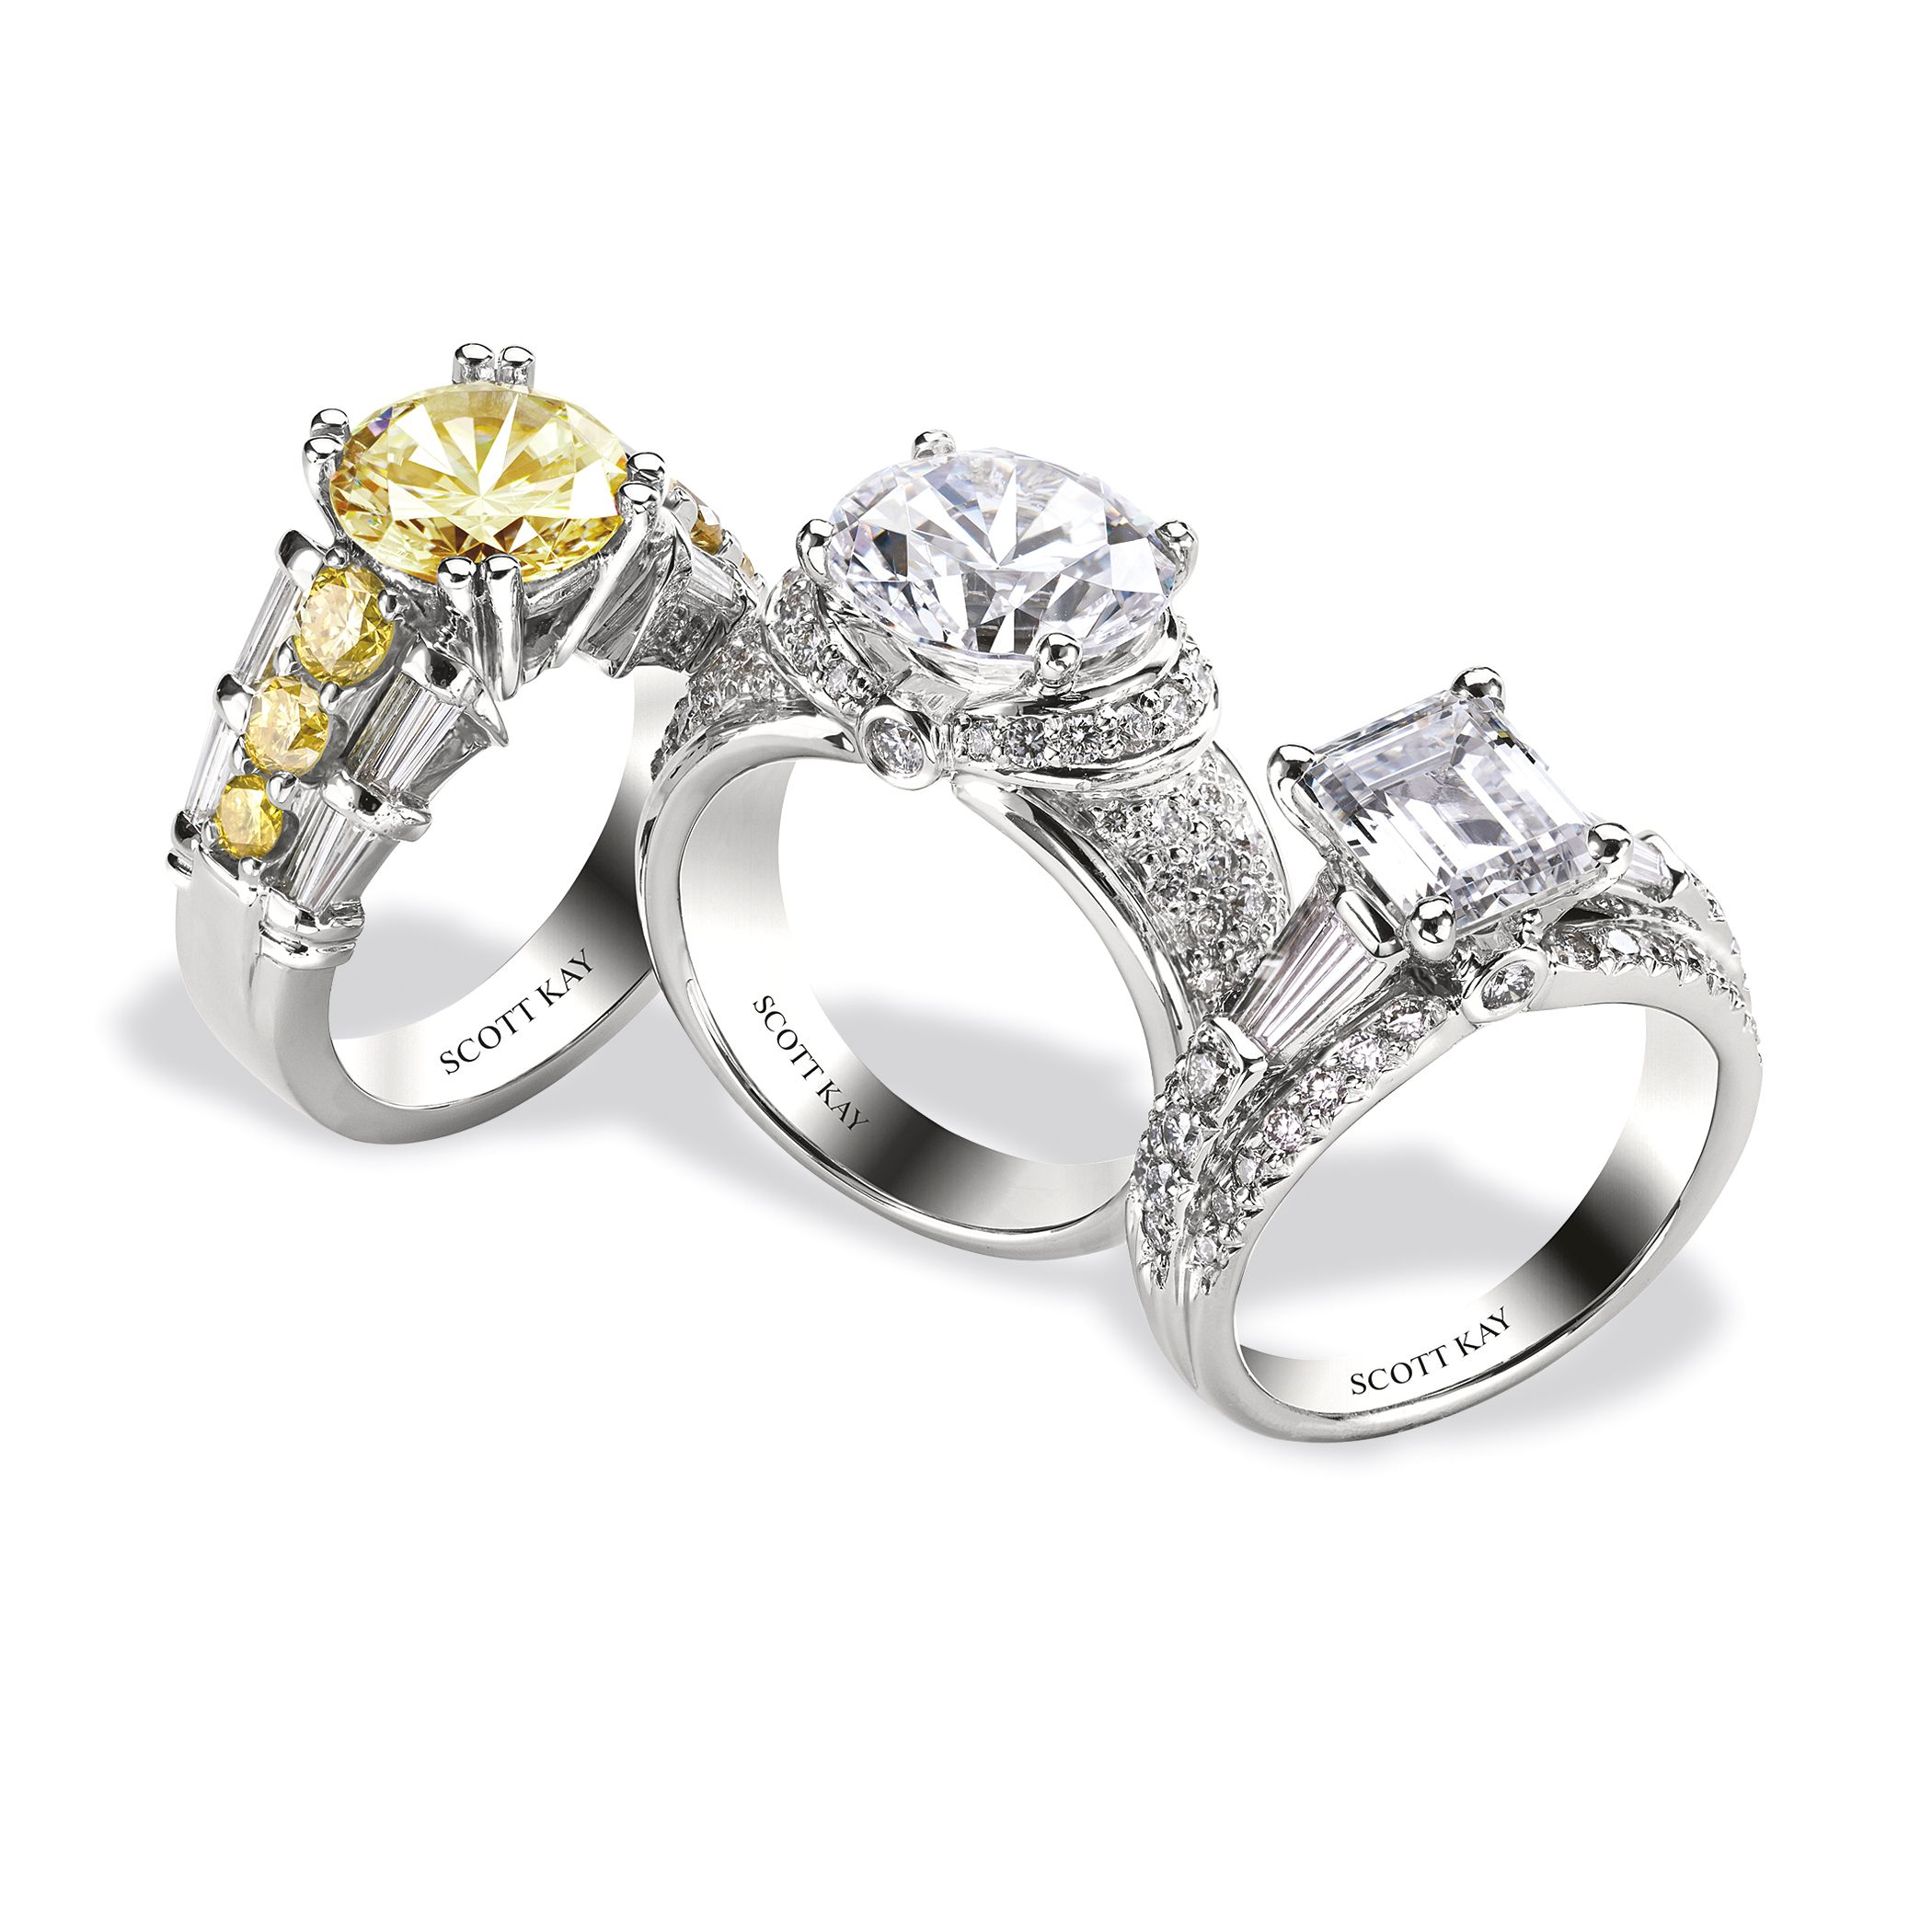 rings diamond concept kay image keshelle settings jewerlycom bolenz files fascinating and trend scott engagement for ring wedding stunning jaide